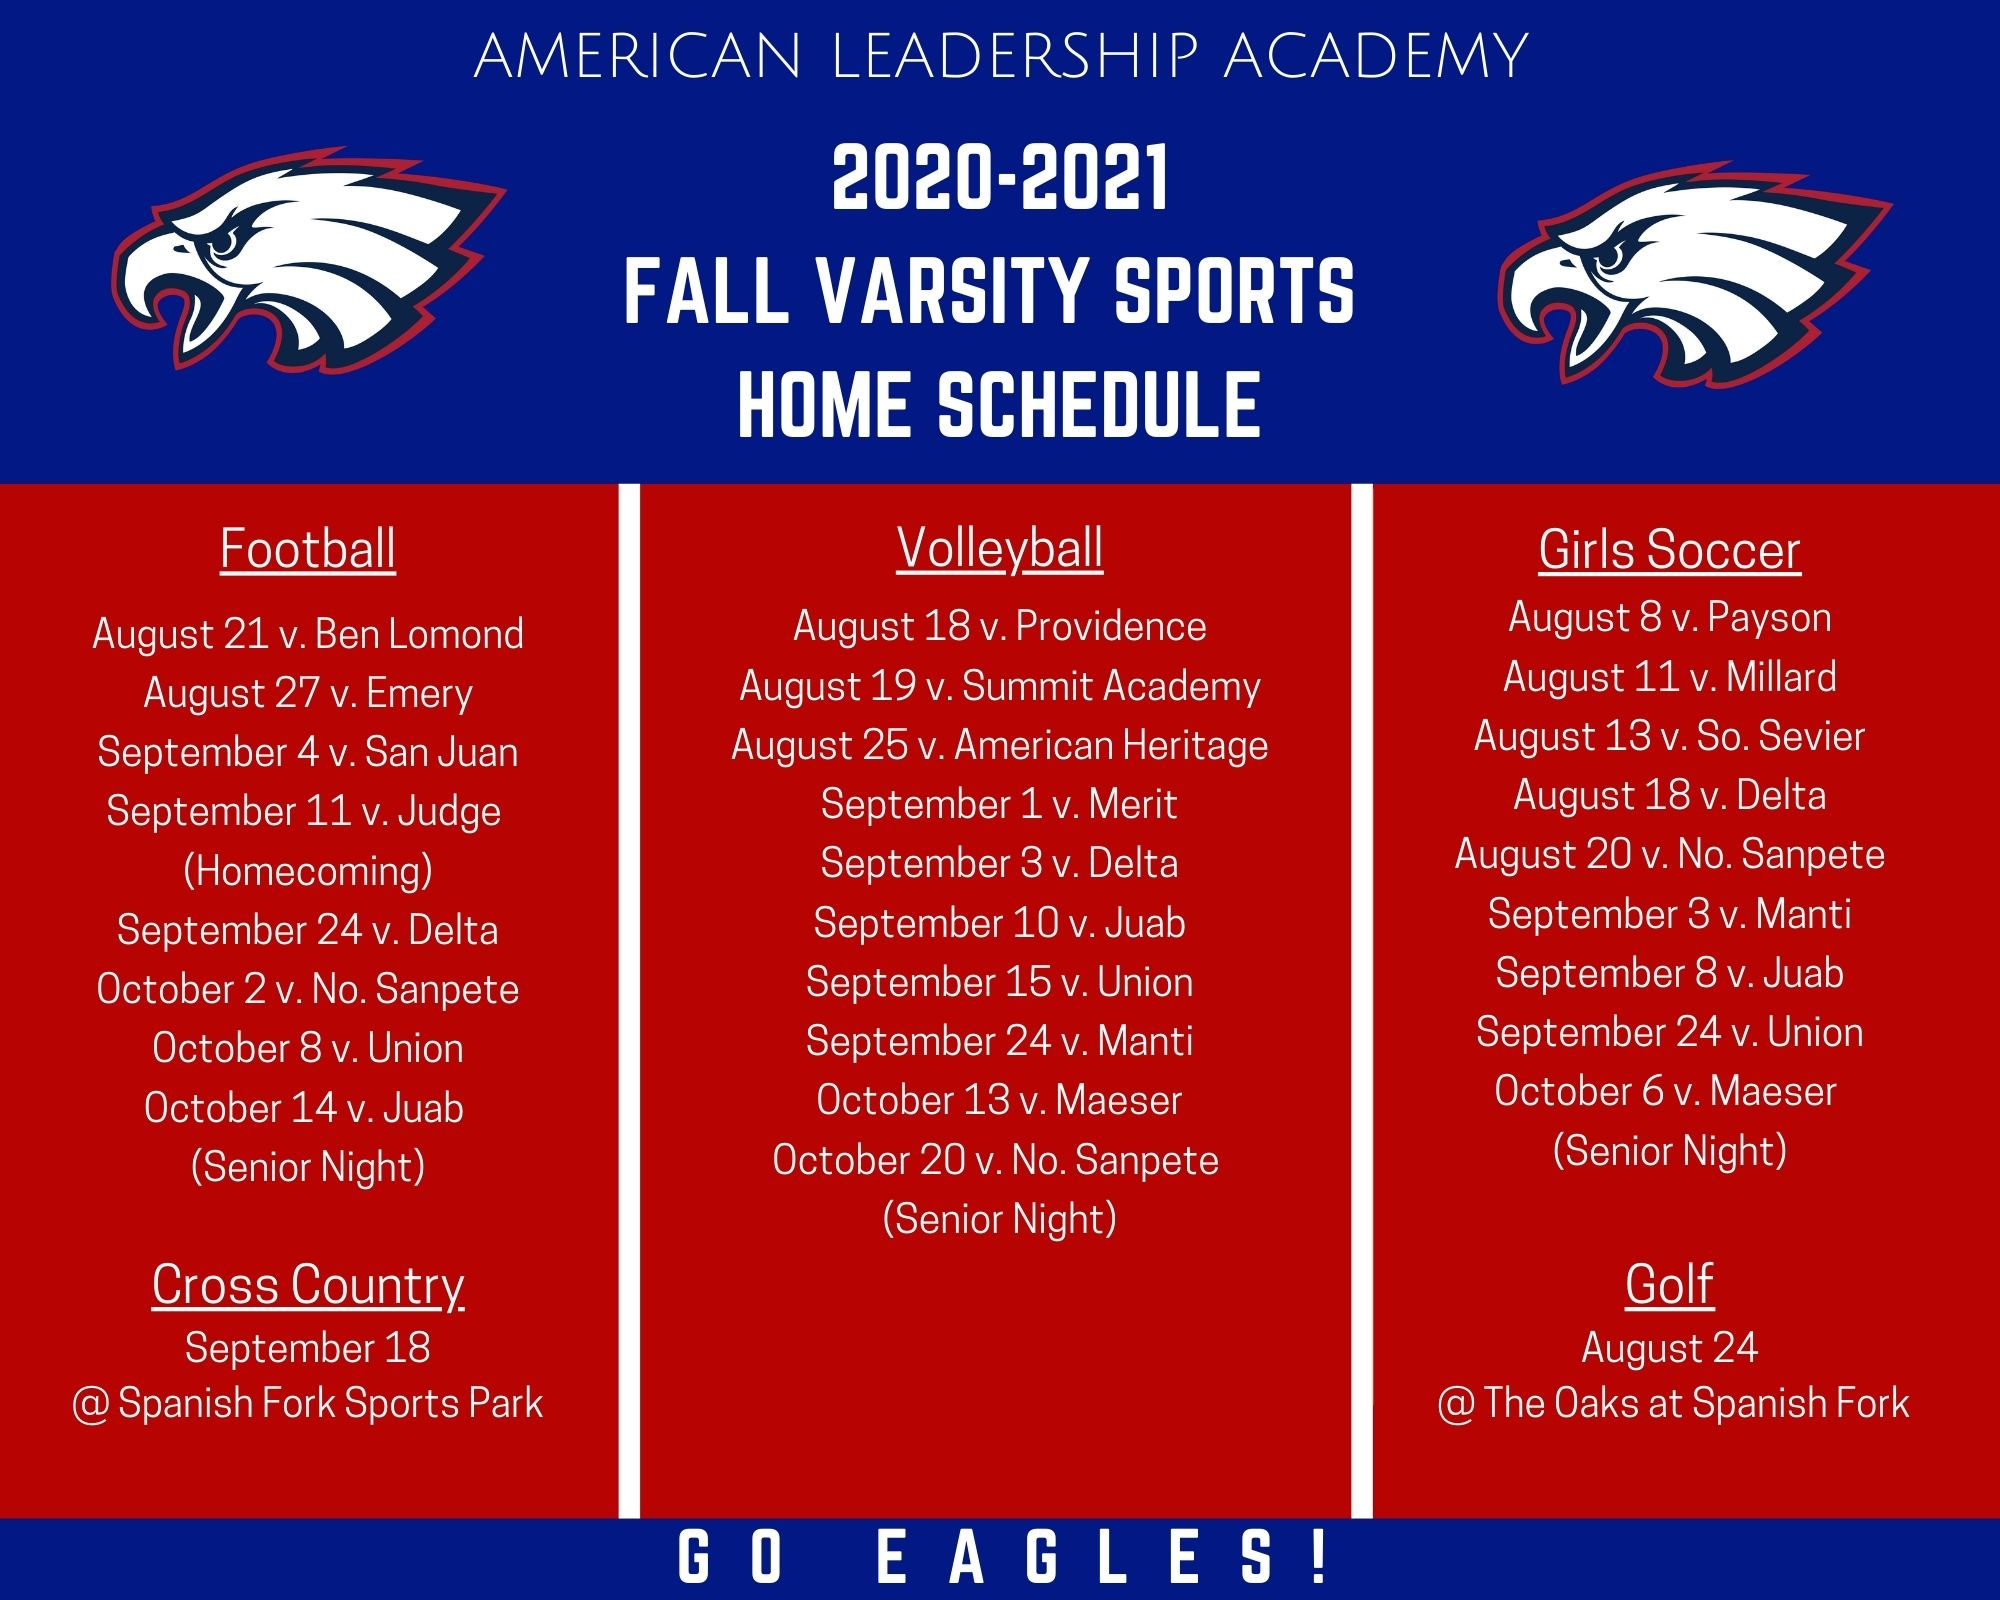 2020-2021 FALL VARSITY SPORTS SCHEDULE